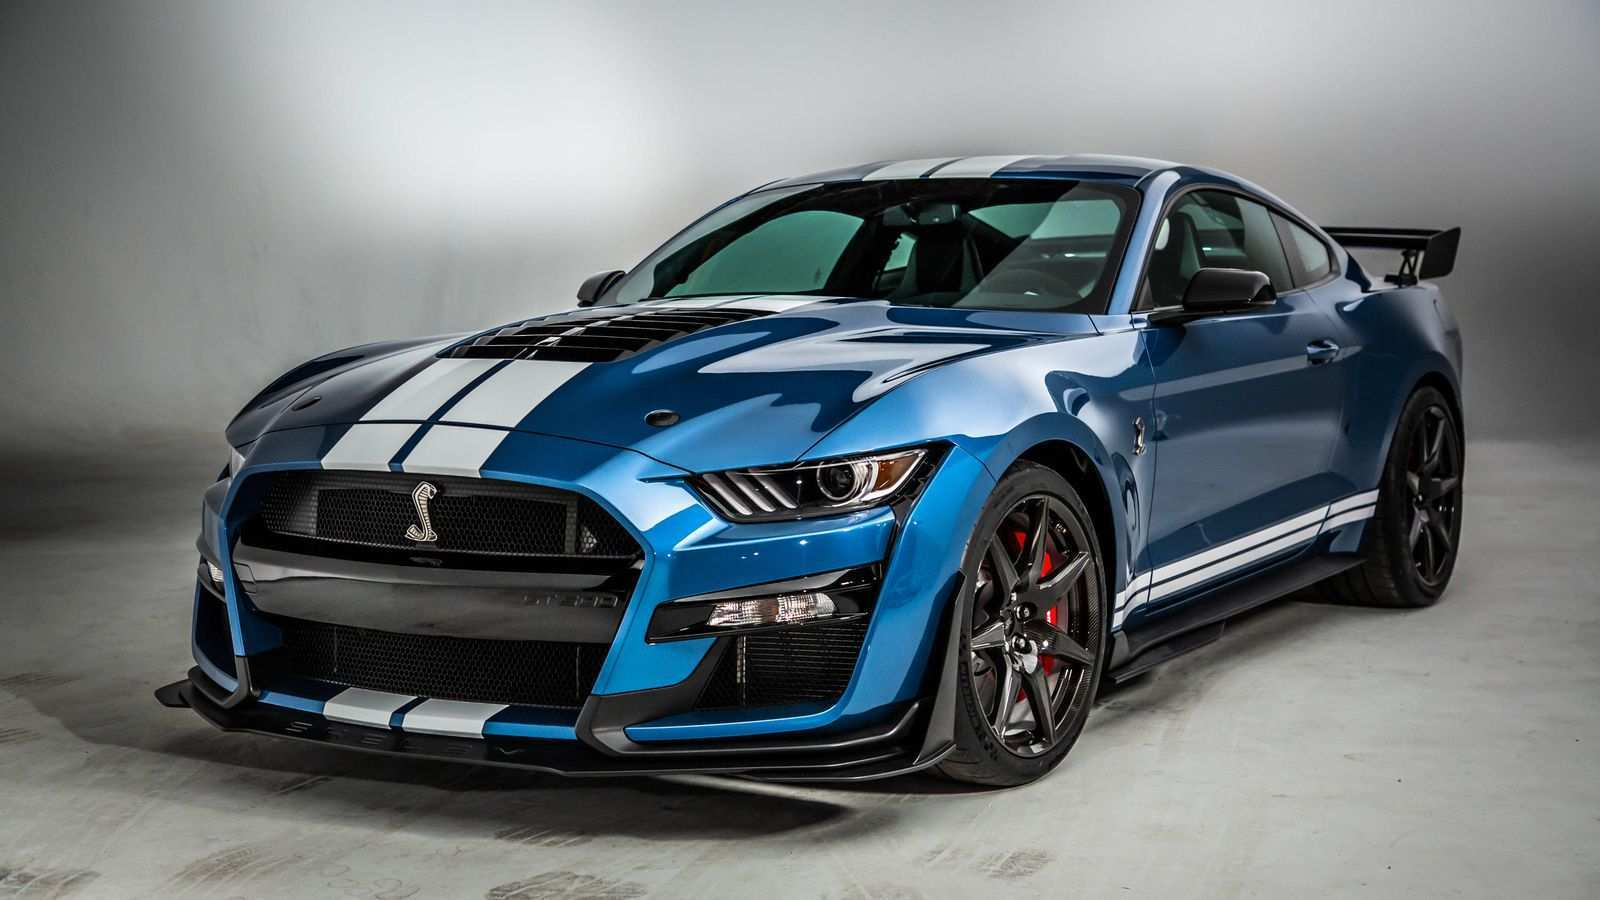 16 great 2020 ford shelby gt500 price rumors with 2020 ford shelby